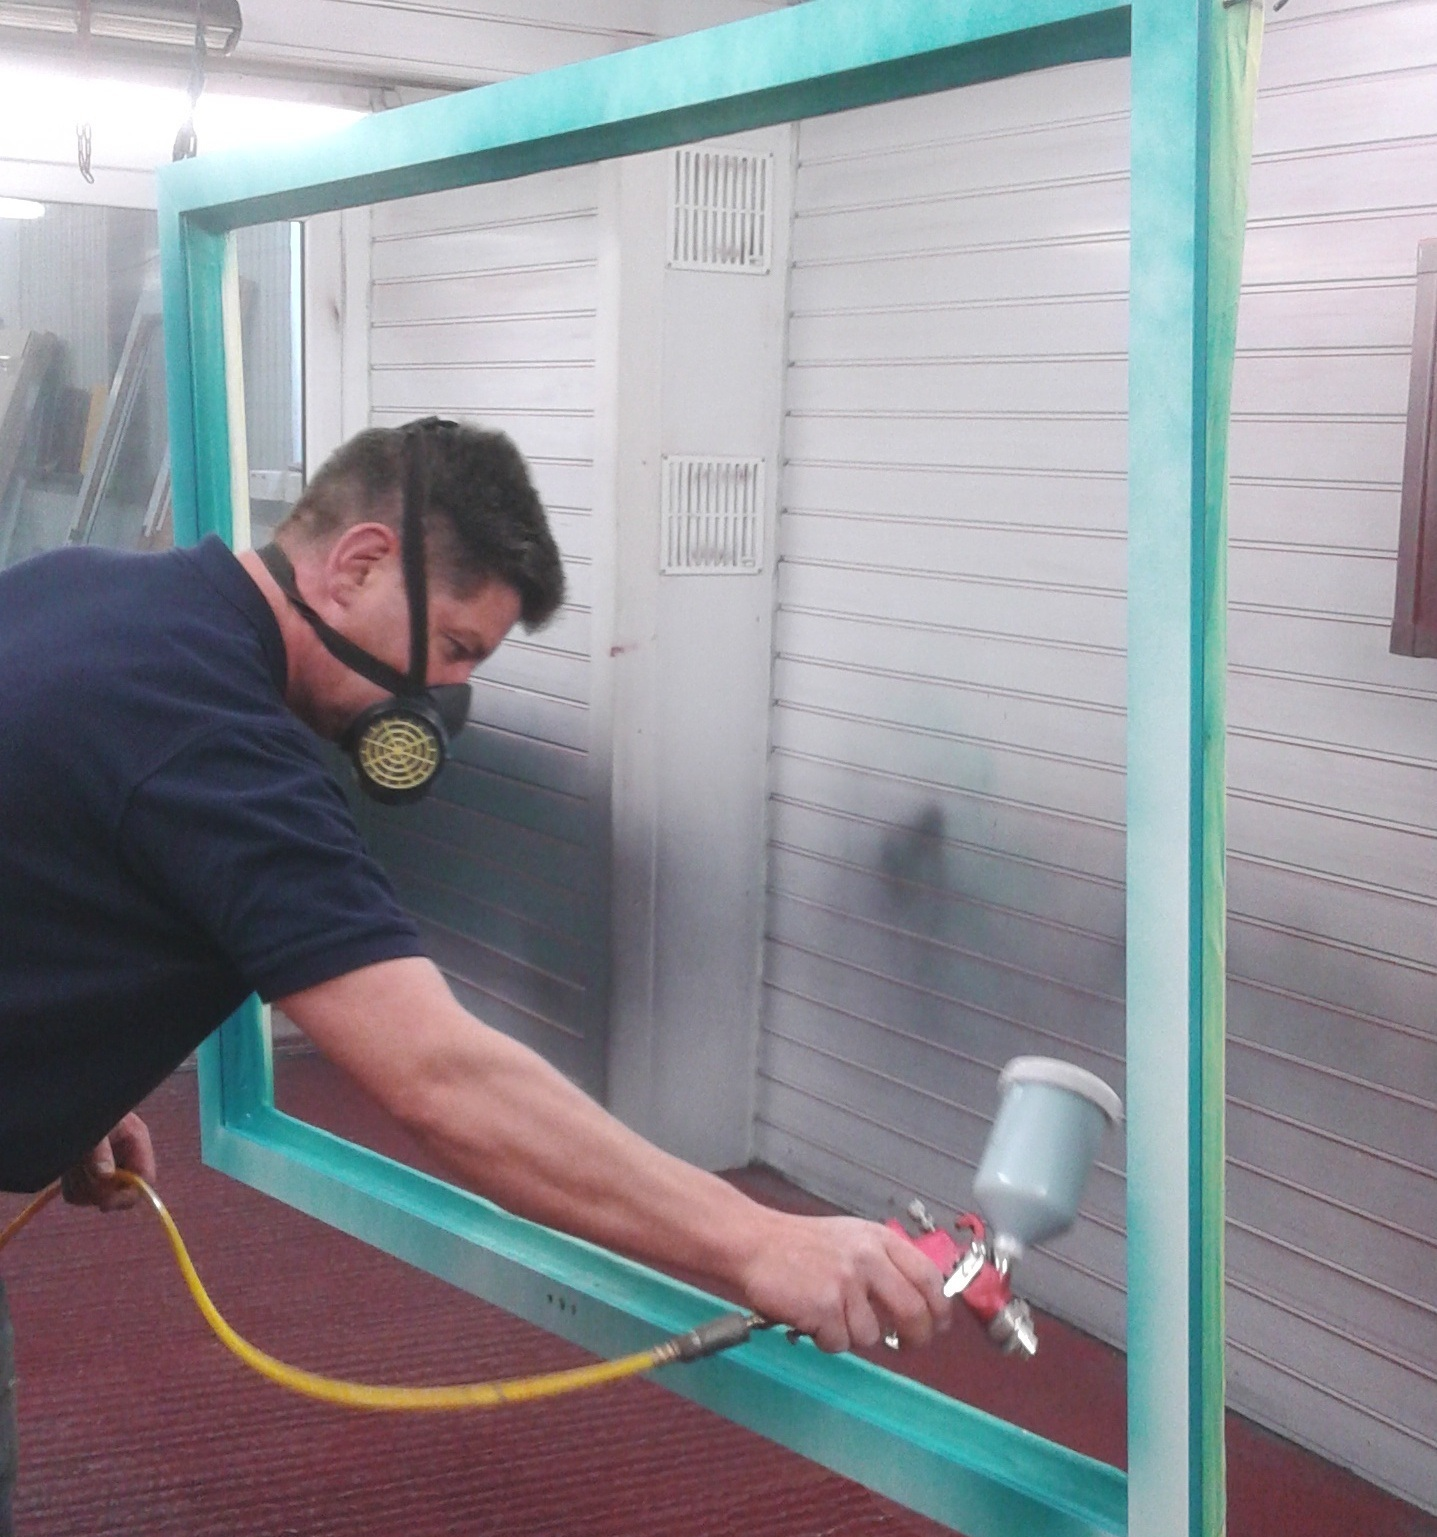 PVC Colour Coating - We specialise in transforming your existing U-PVC Windows, Doors, Conservatories, Fascia & Soffits & Commercial Curtain Walling with our on-site spraying, available in any colour.